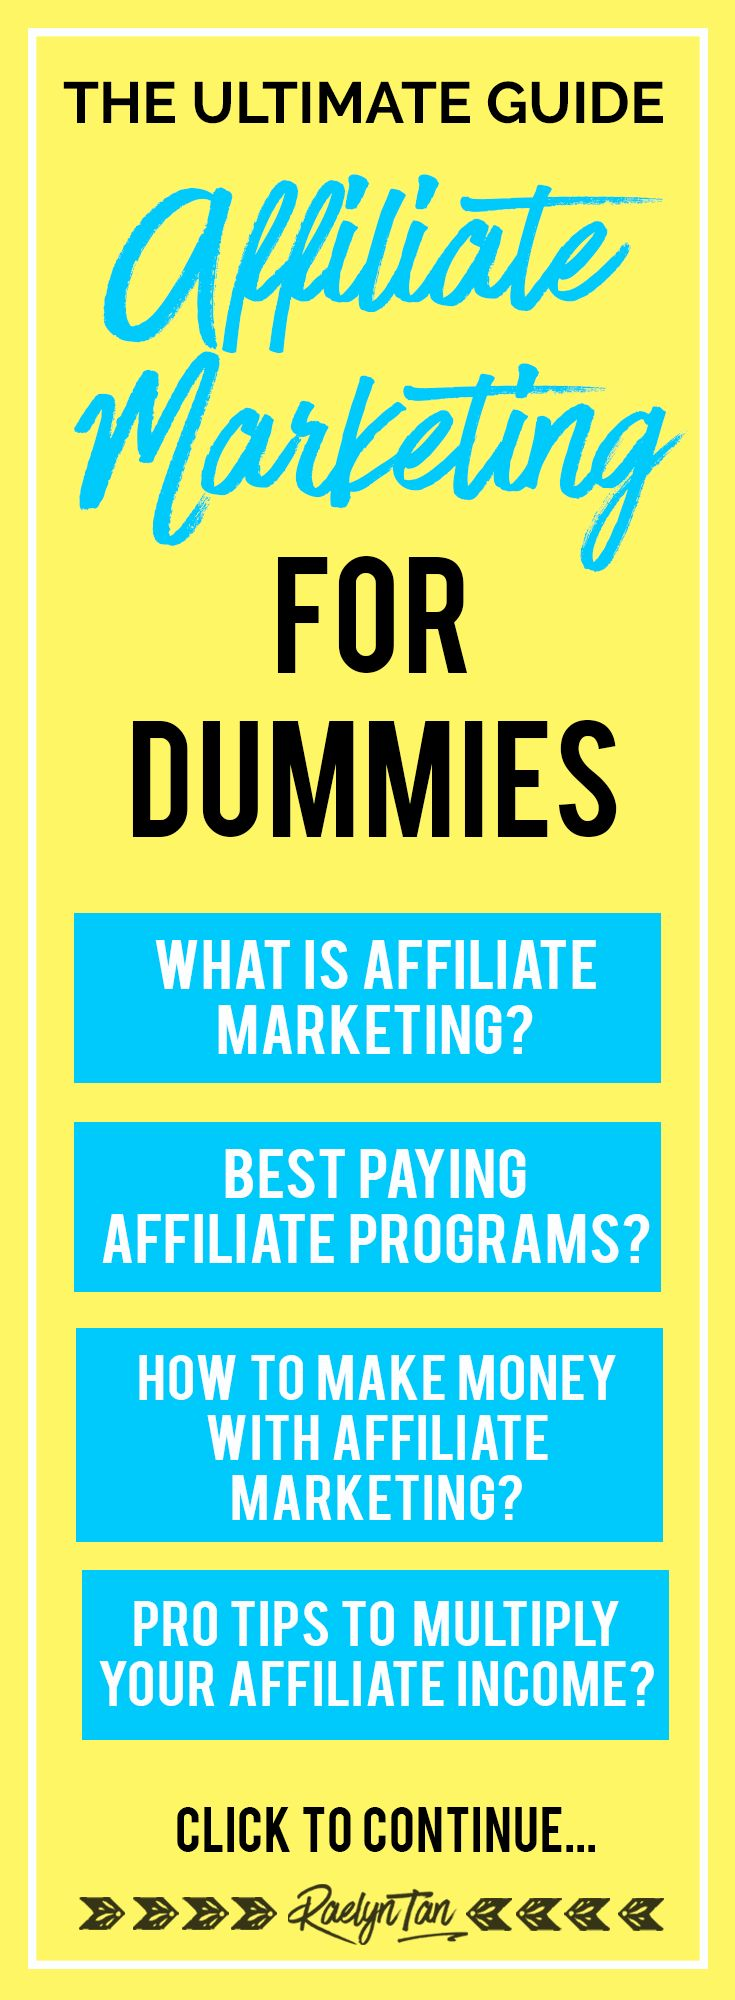 The Ultimate Guide: Affiliate Marketing For Dummies. Learn how to make your blog's success inevitable at nextlevelblogging.com